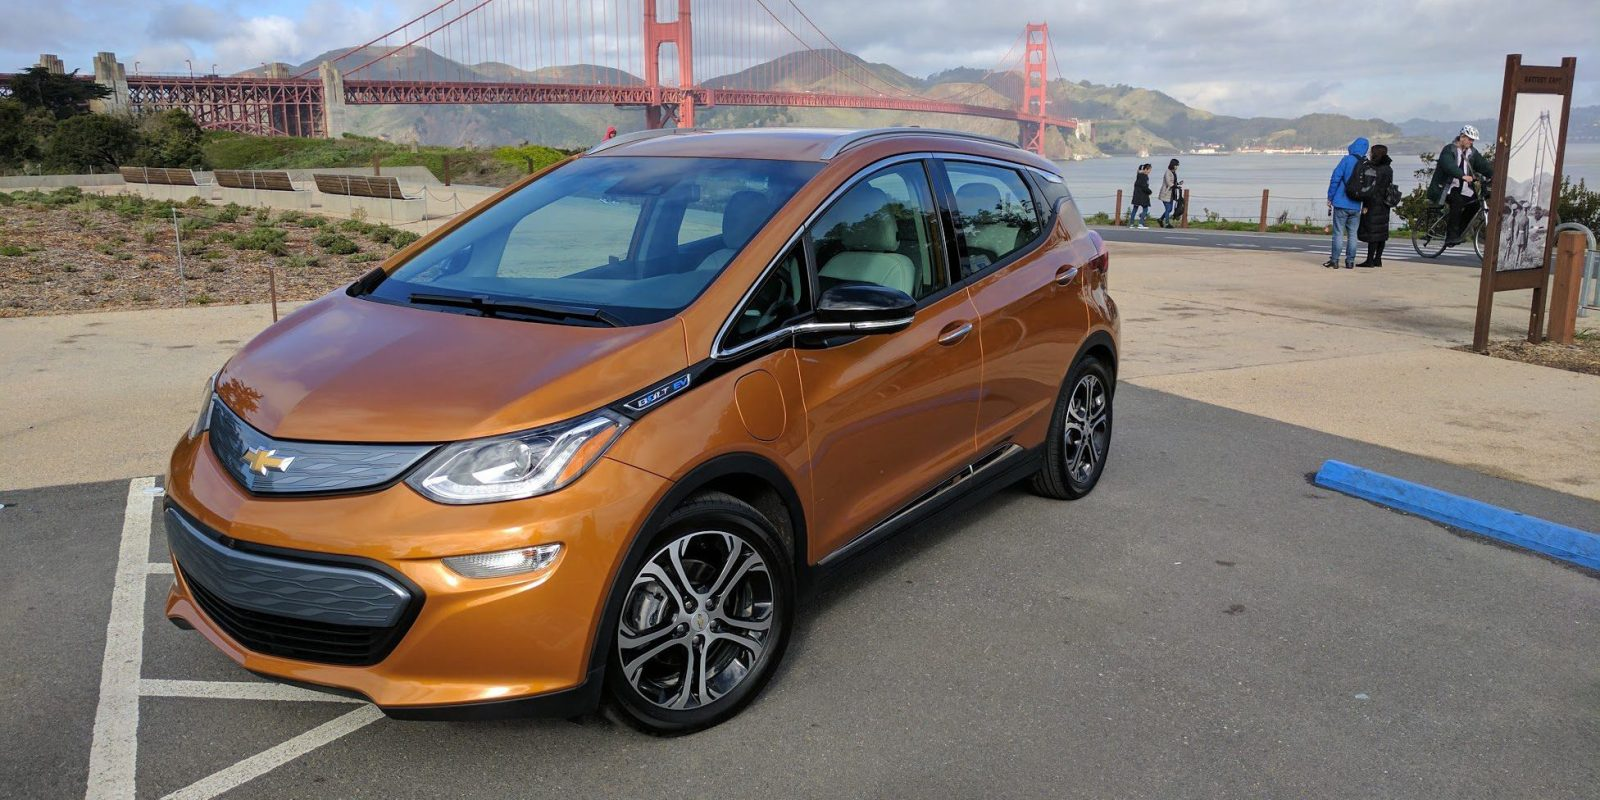 Gm Hits Electric Vehicle Tax Credit Threshold Phase Out To Start In April